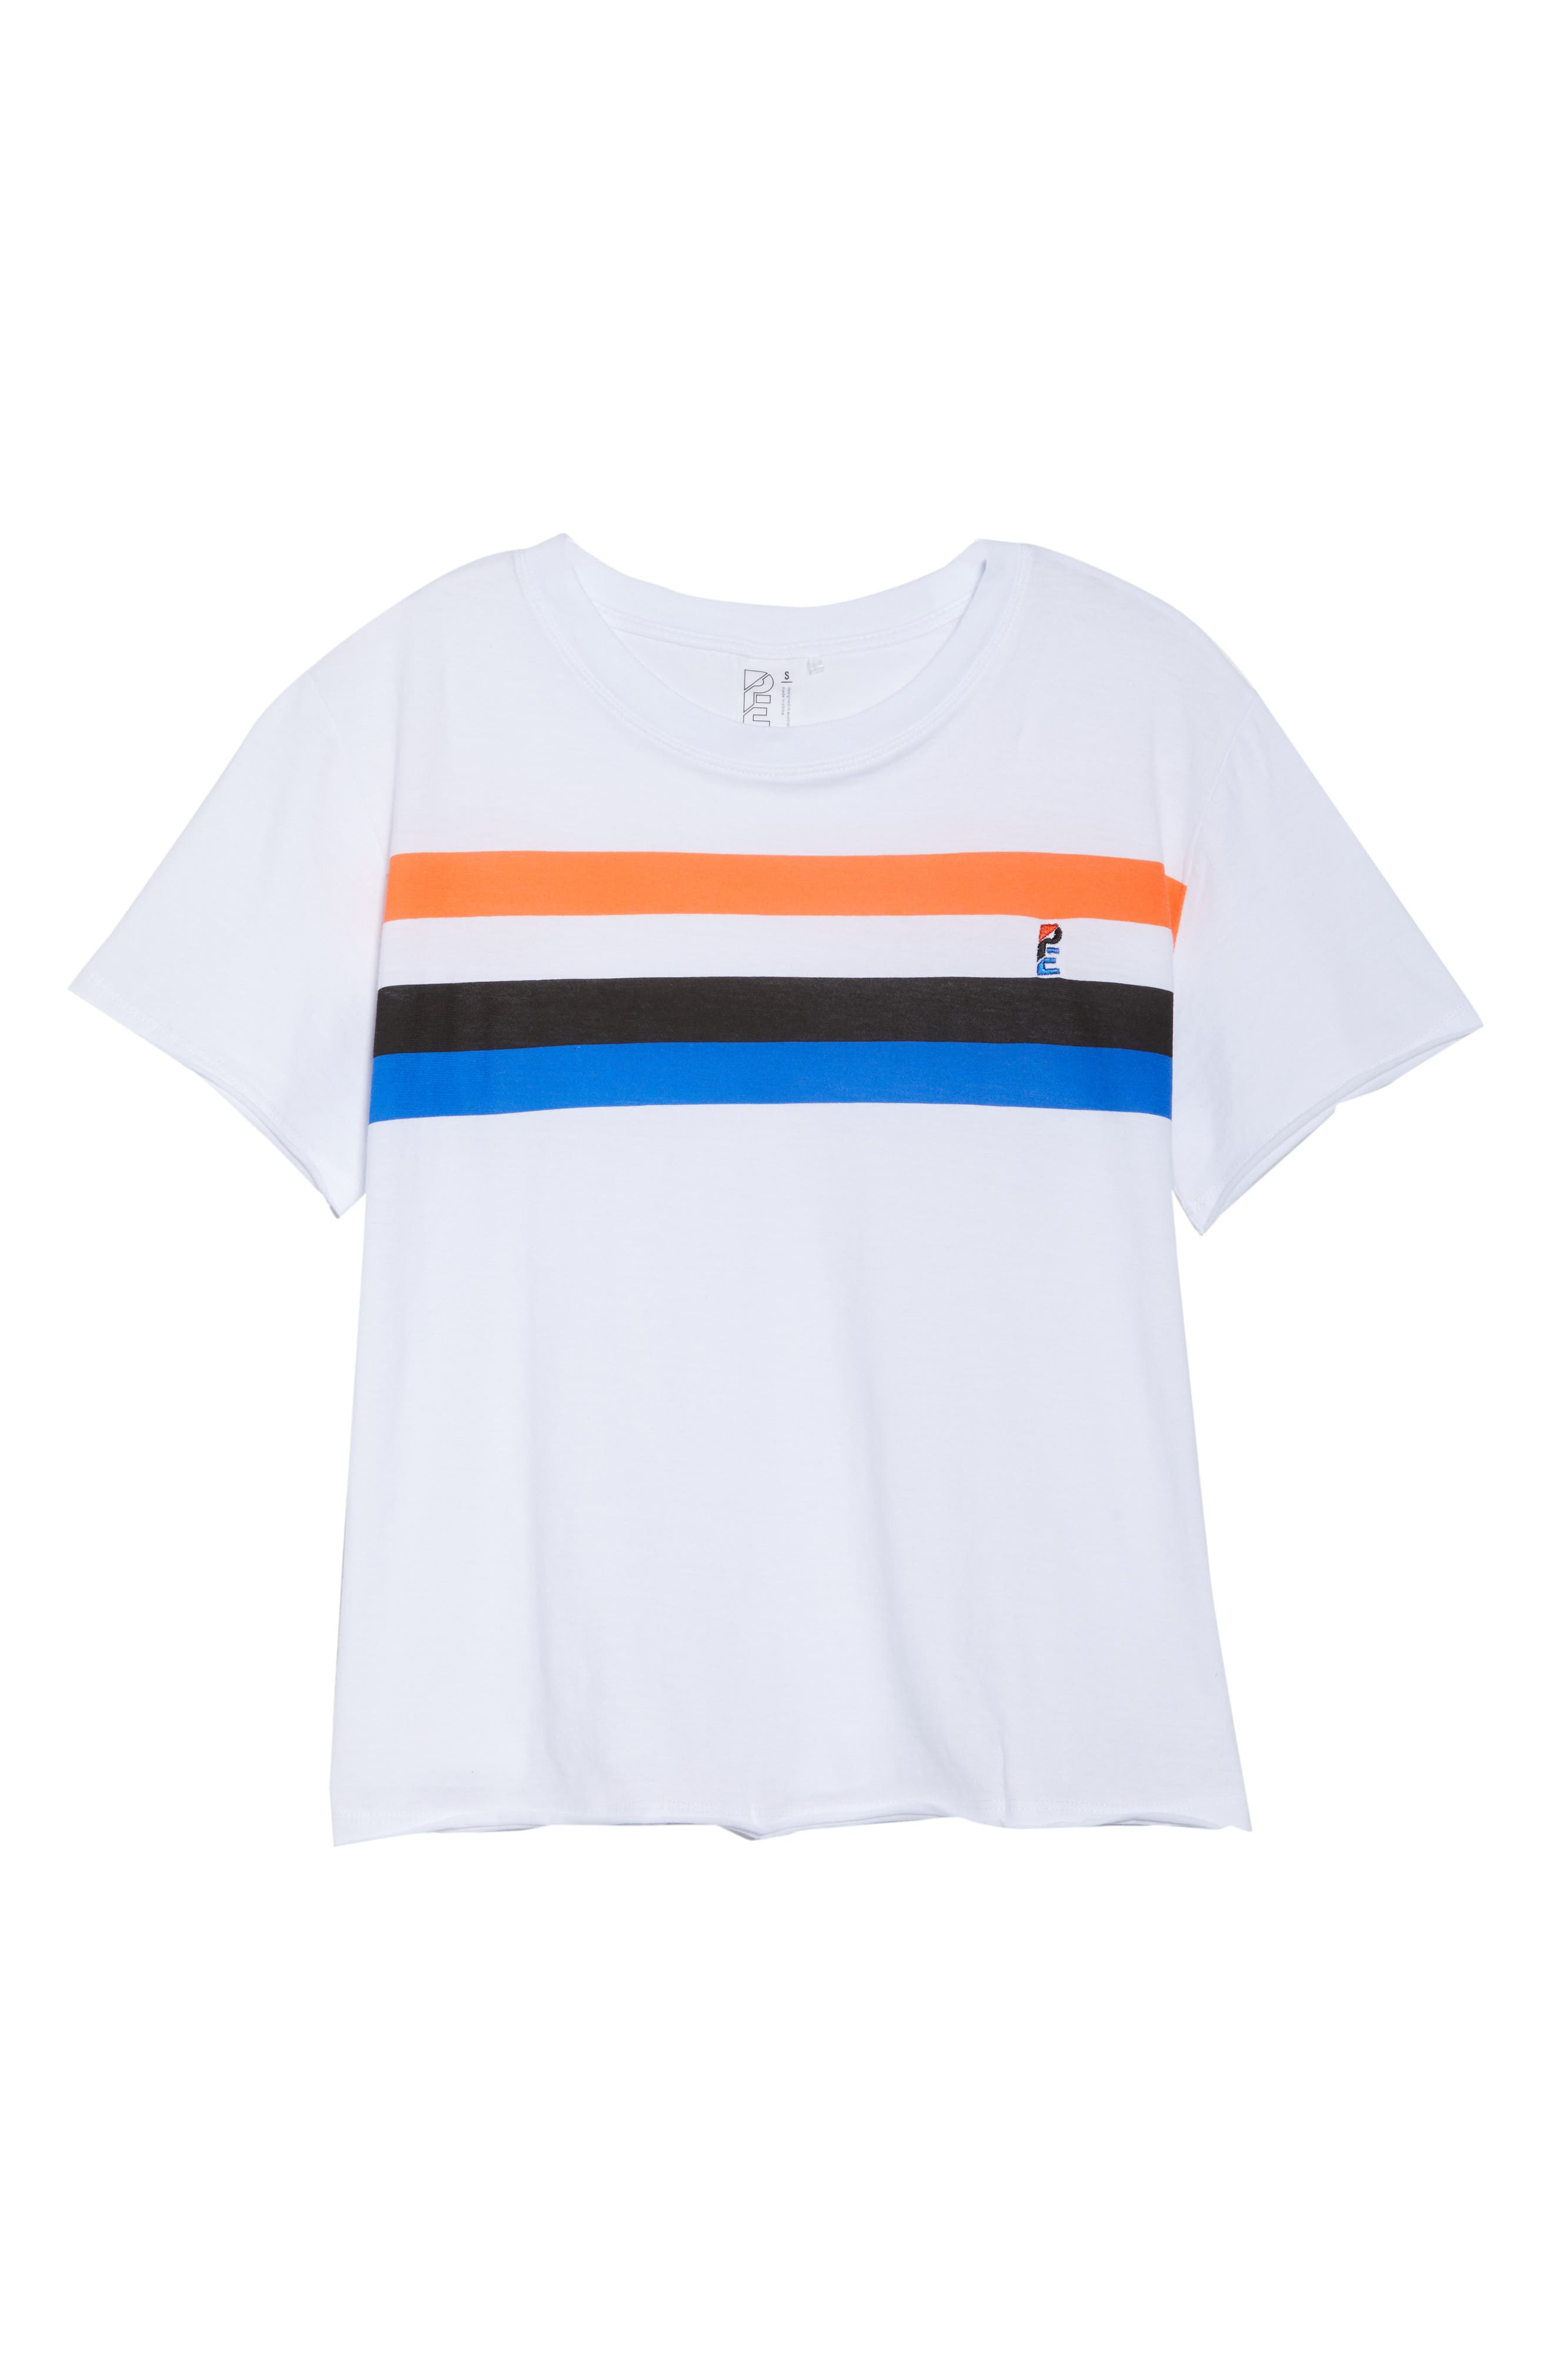 Middle Distance Tee,                             Alternate thumbnail 7, color,                             100